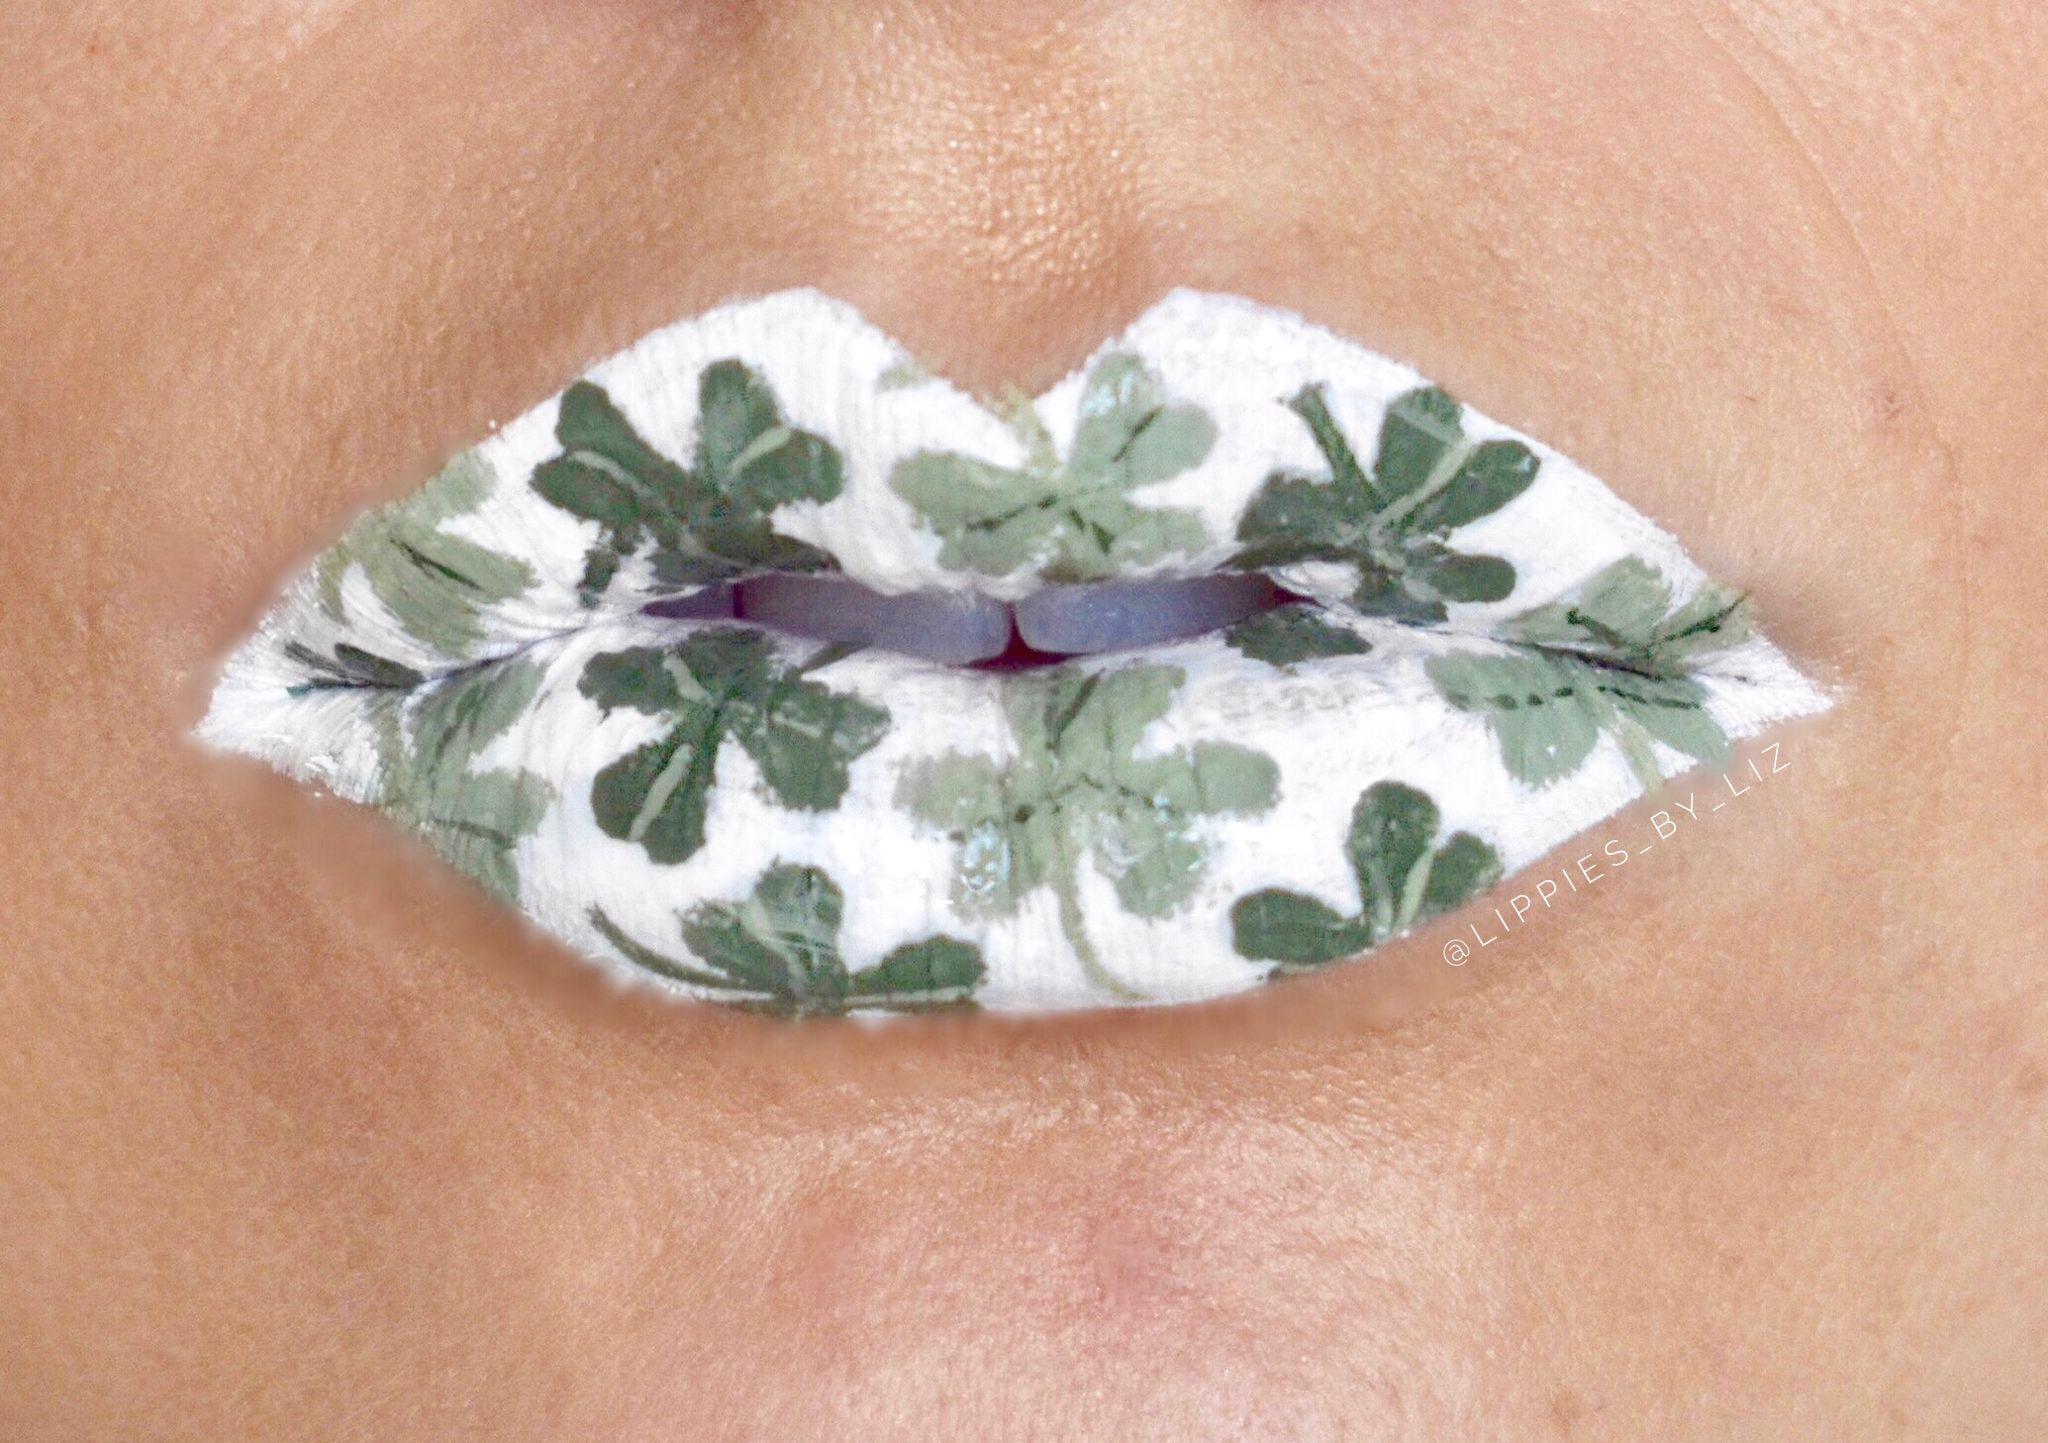 St. Patrick's Day white lips with green clovers